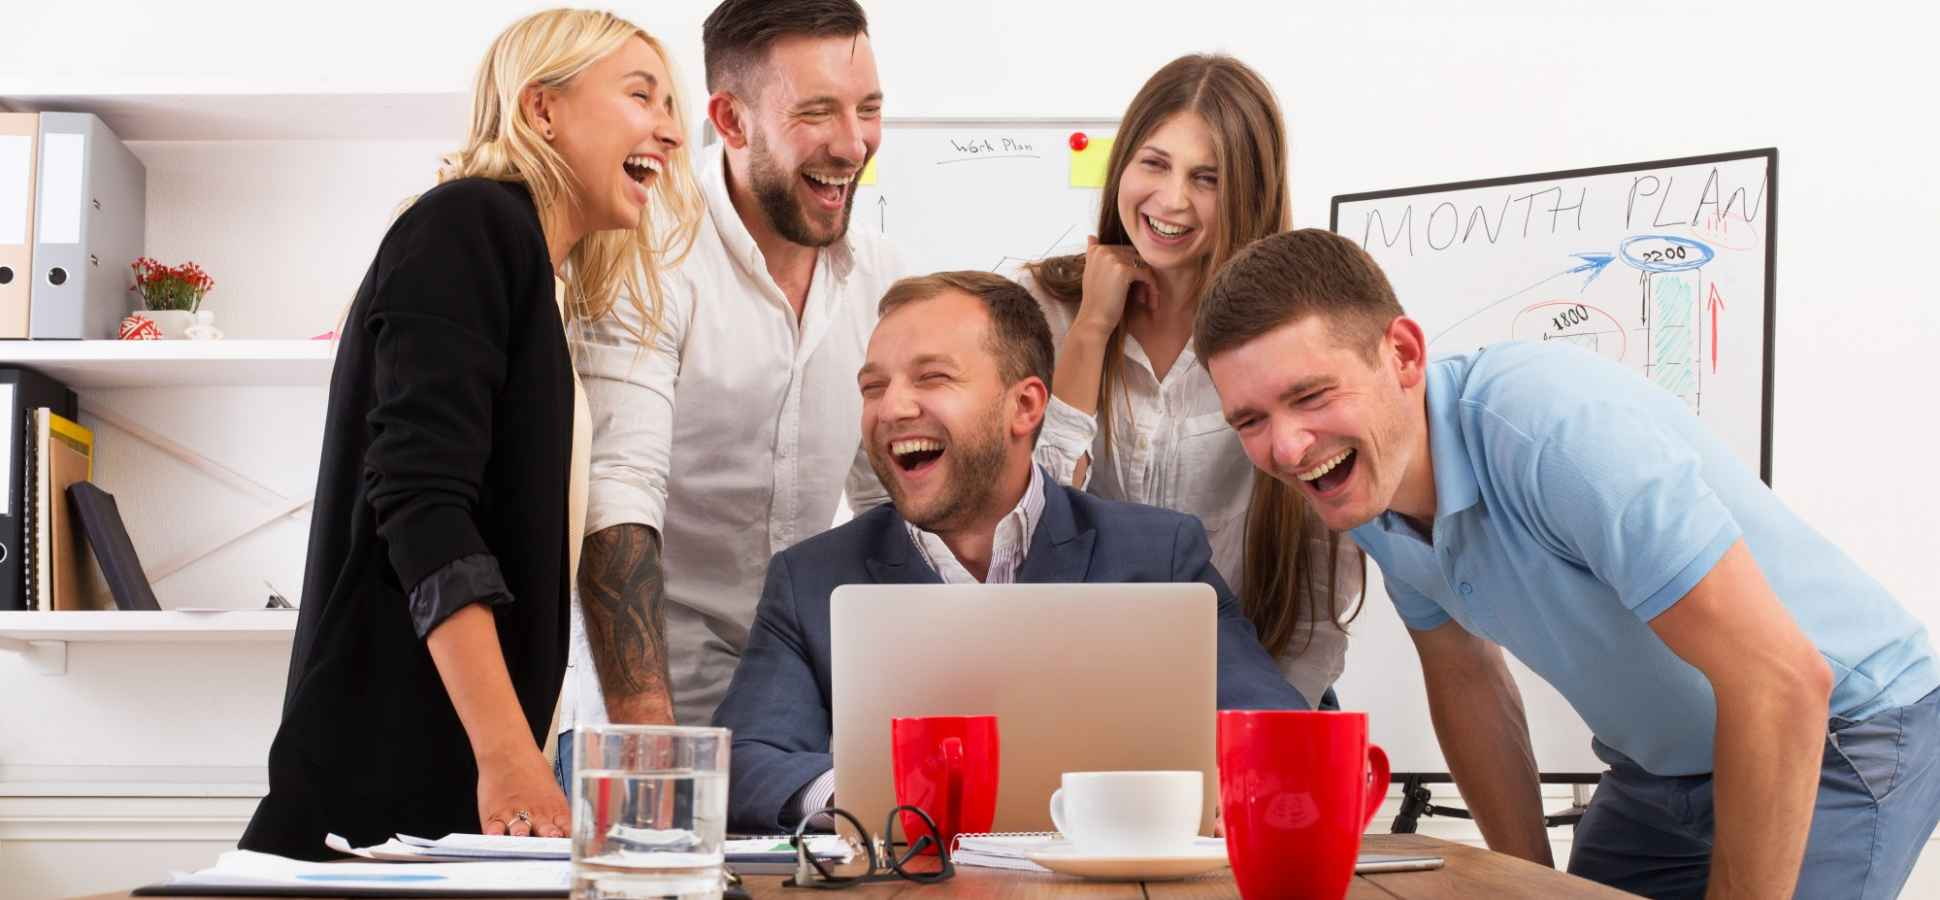 Want to Be More Funny? How to Make Friends at Work With Humor--and How Not To